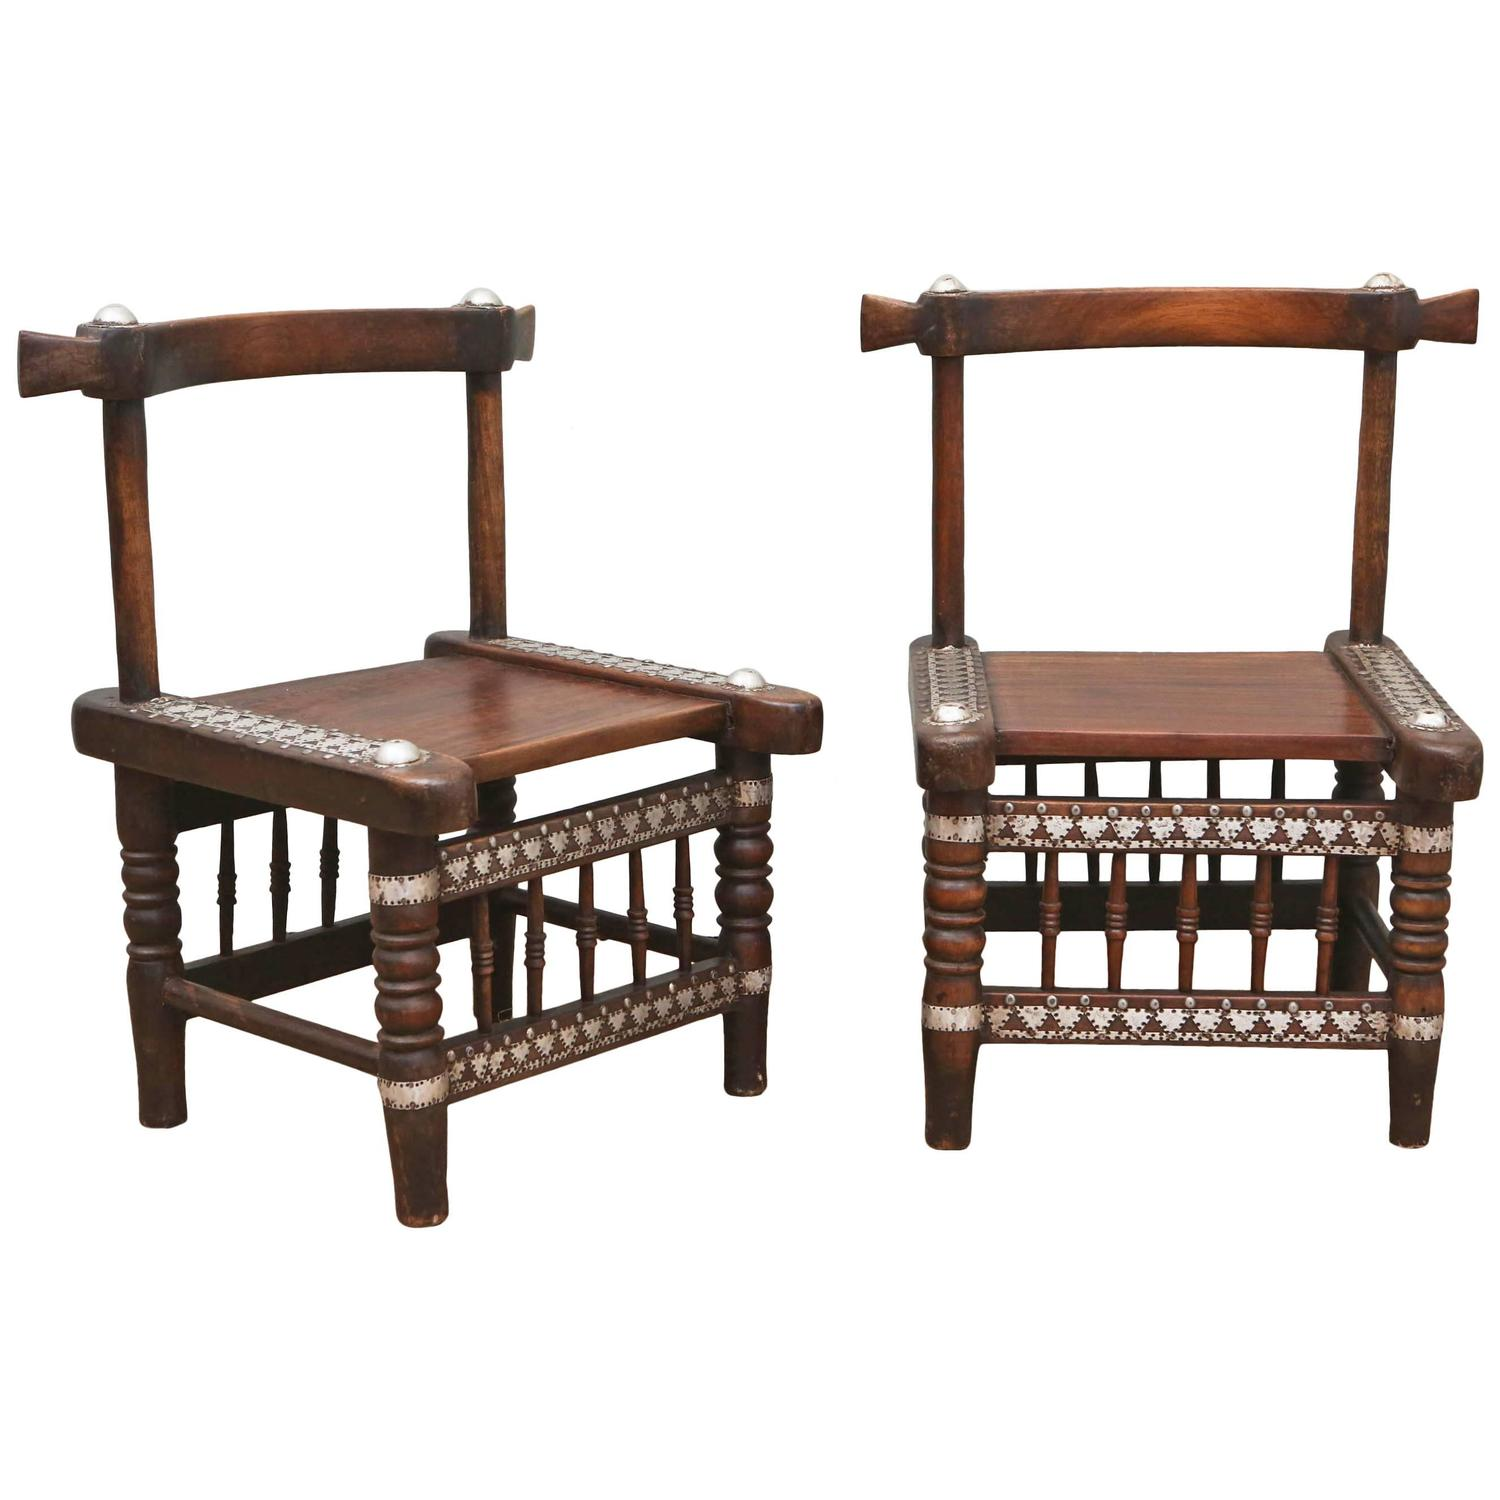 rocking chairs for nursery south africa chair mesh stool ashante african low sale at 1stdibs